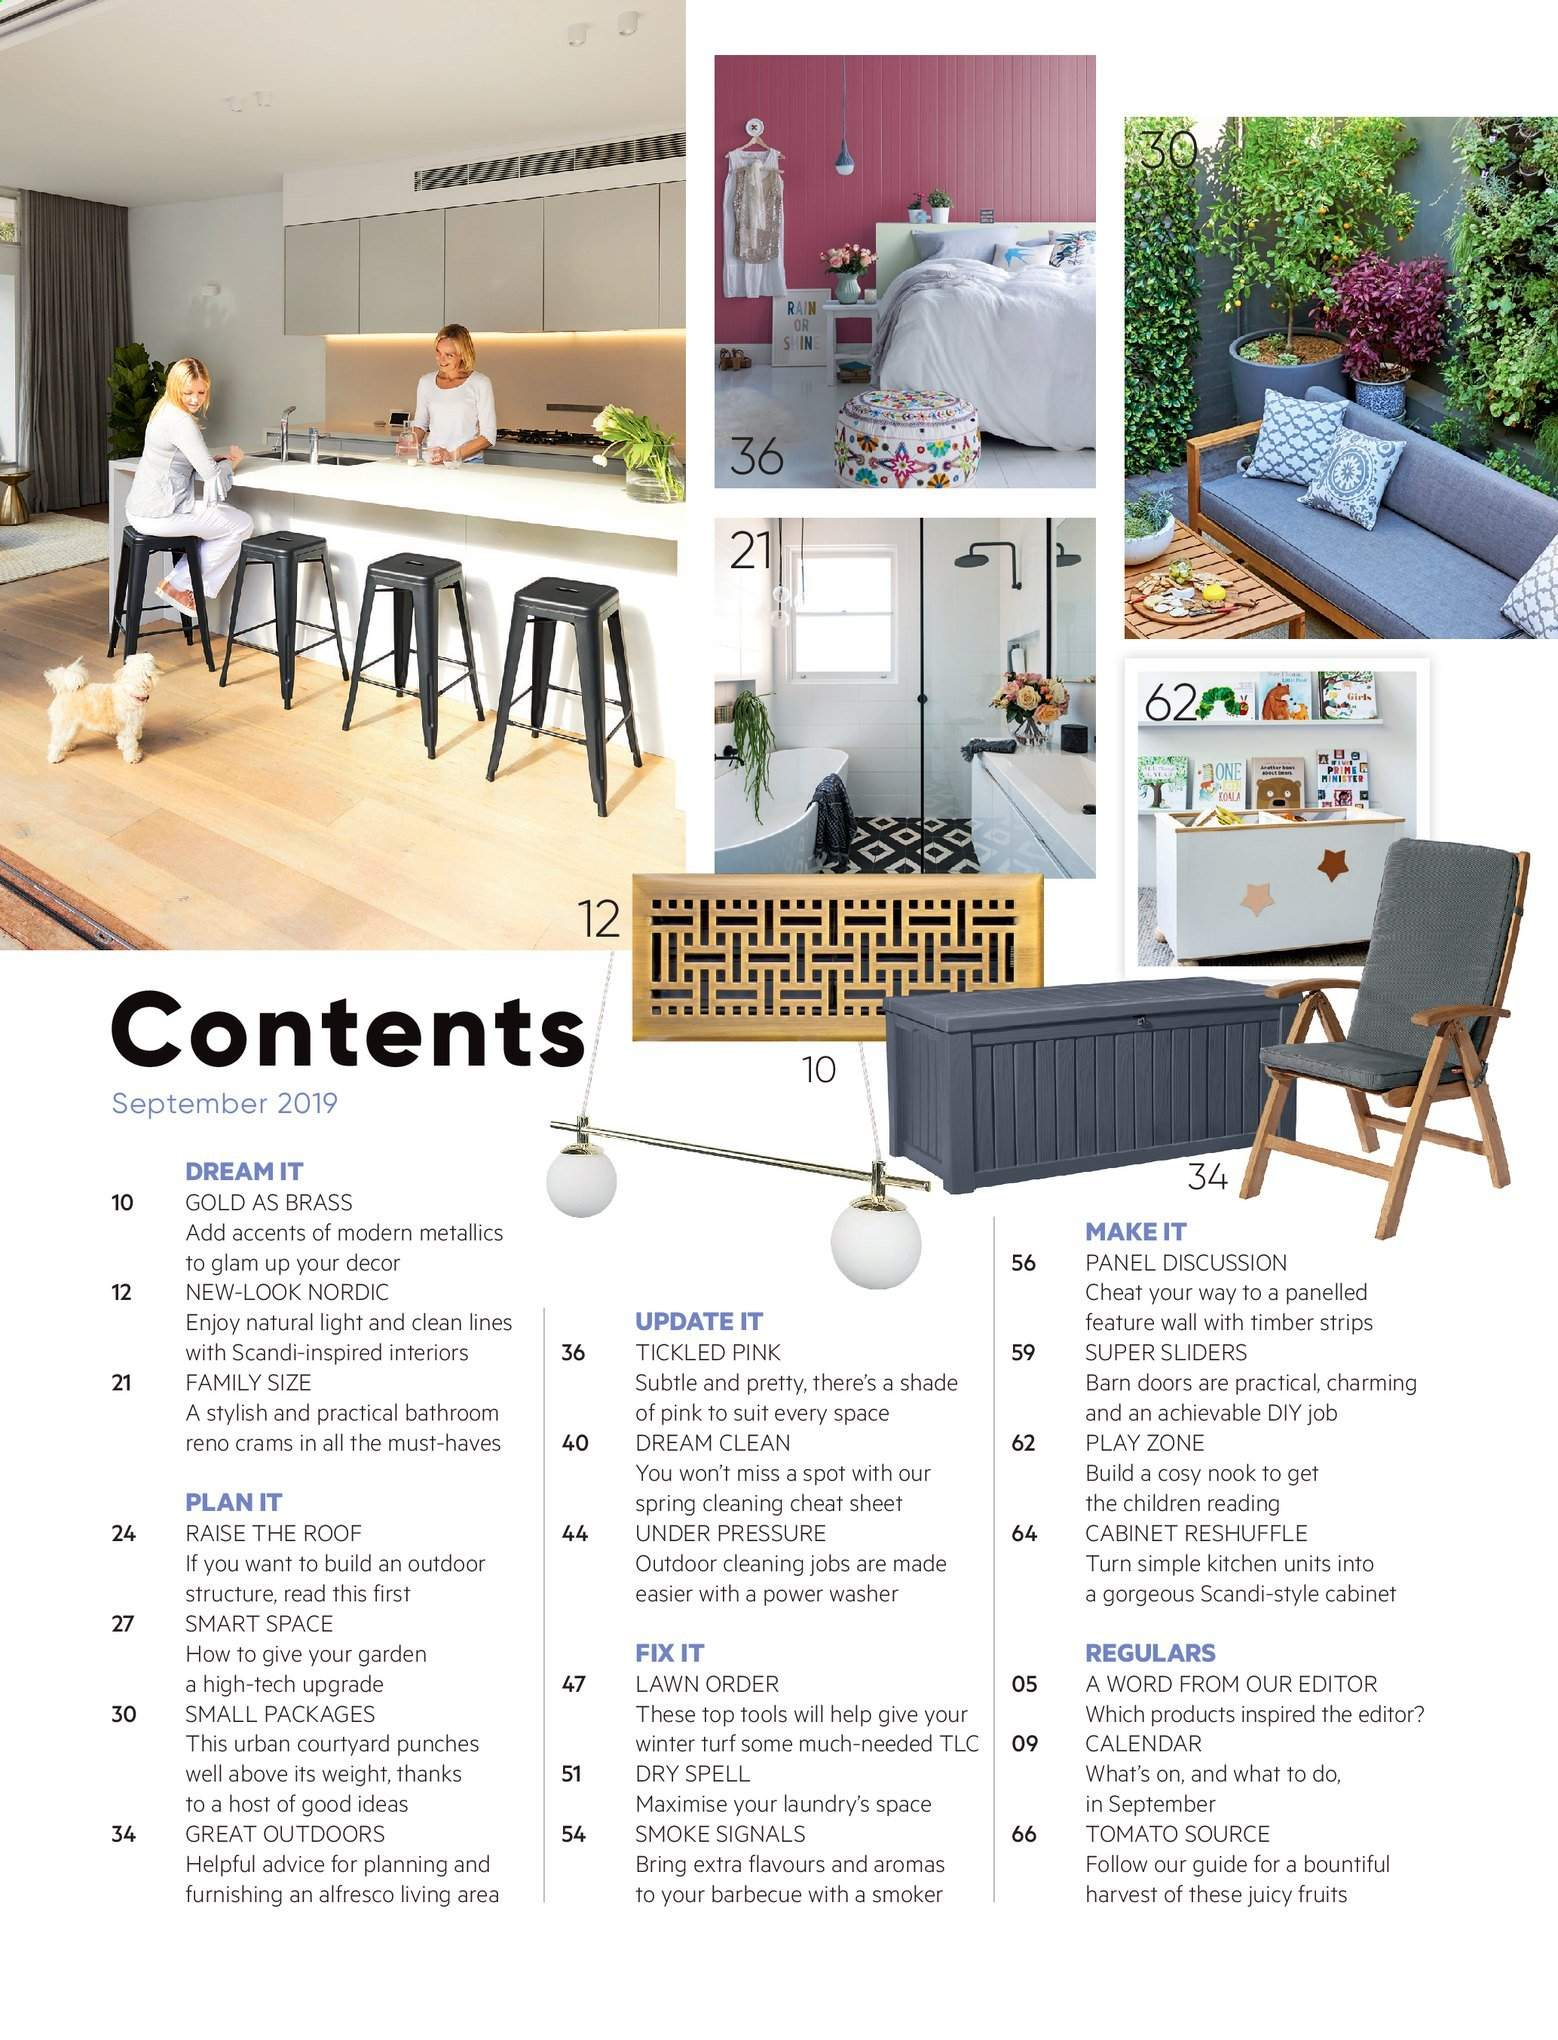 Bunnings Warehouse catalogue and weekly specials 1 9 2019